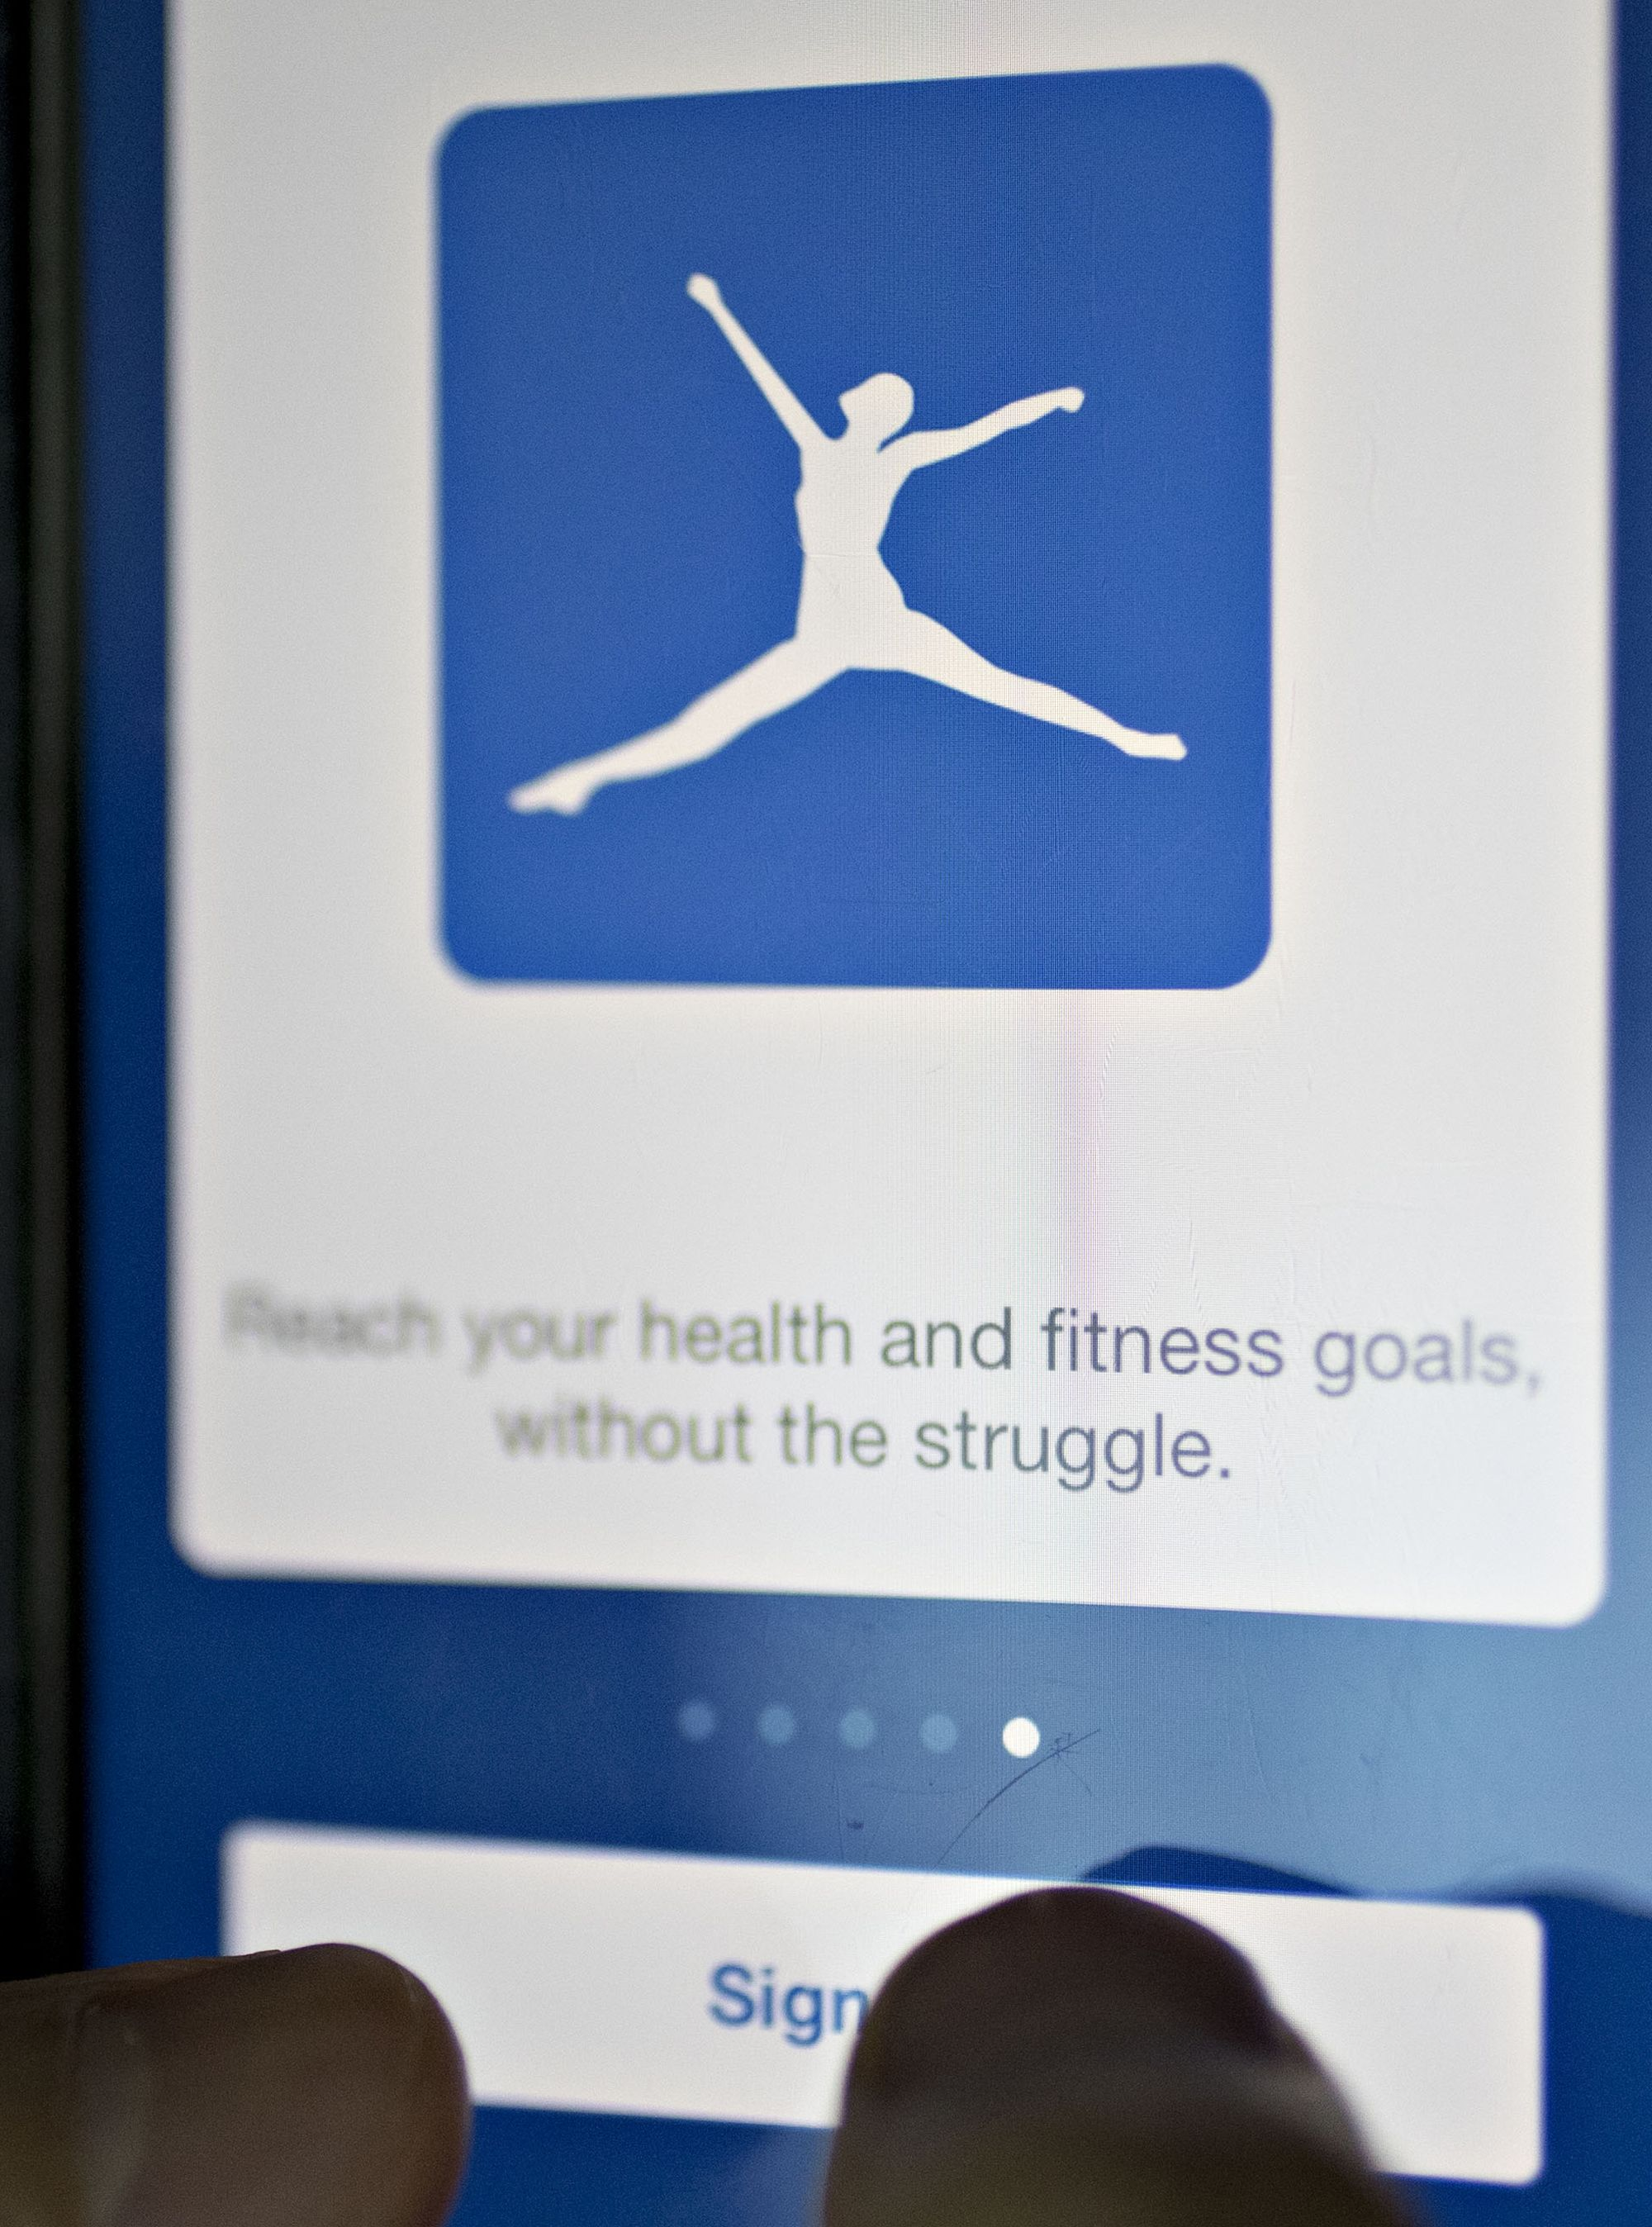 Calorie counter and food diary apps that will help you